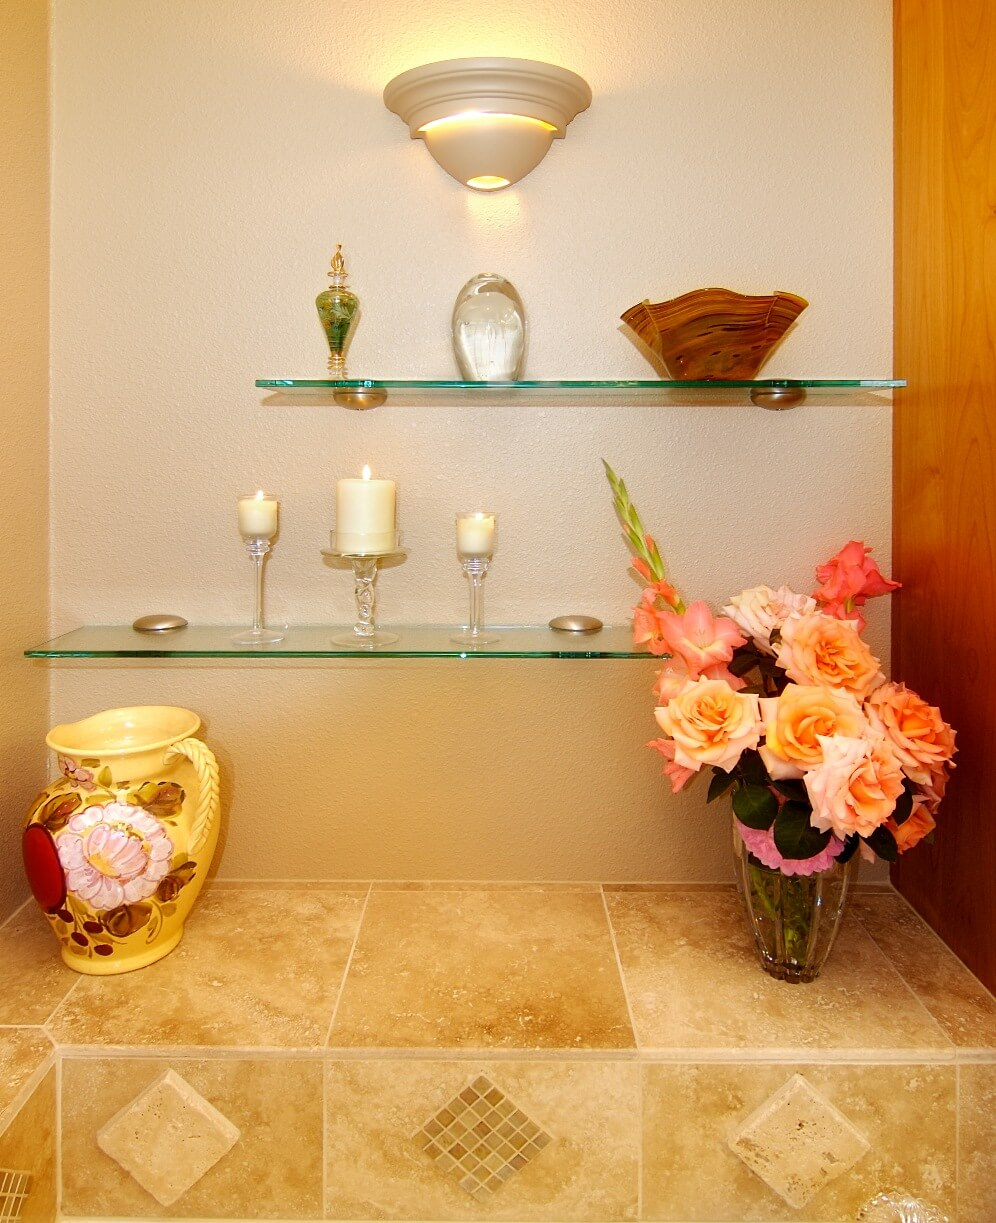 A small bath remodeling idea is glass shelves, which provide additional display space without blocking light.